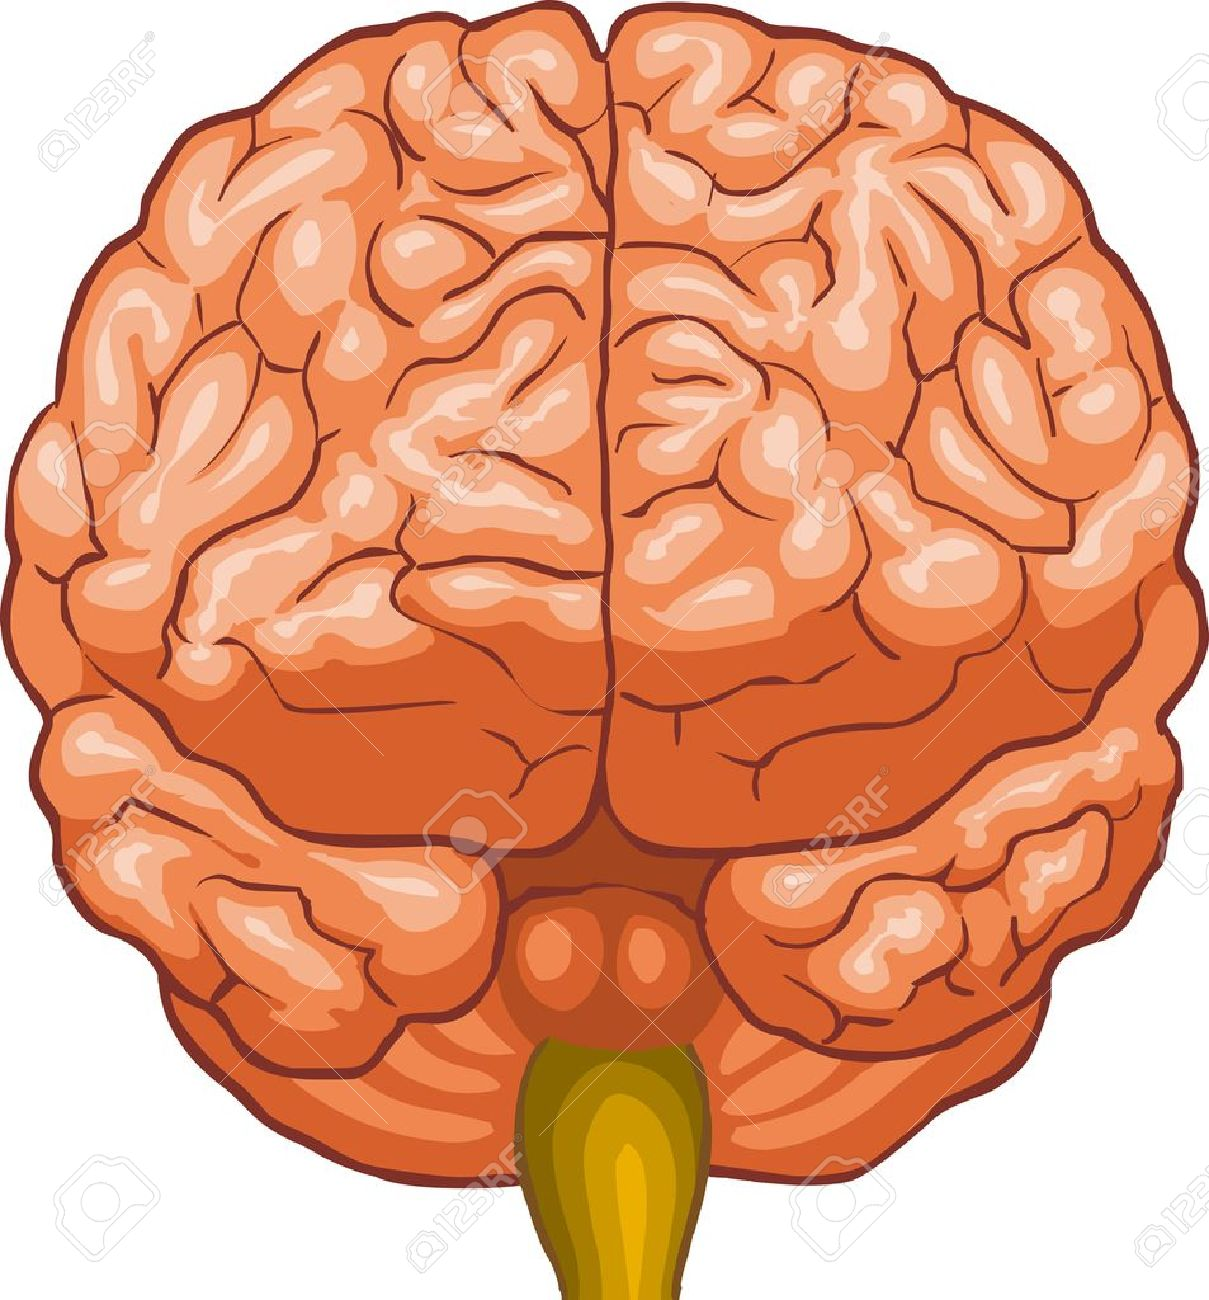 Brain front view clipart picture transparent stock Brain telepathy stock vector illustration and royalty free telepathy ... picture transparent stock